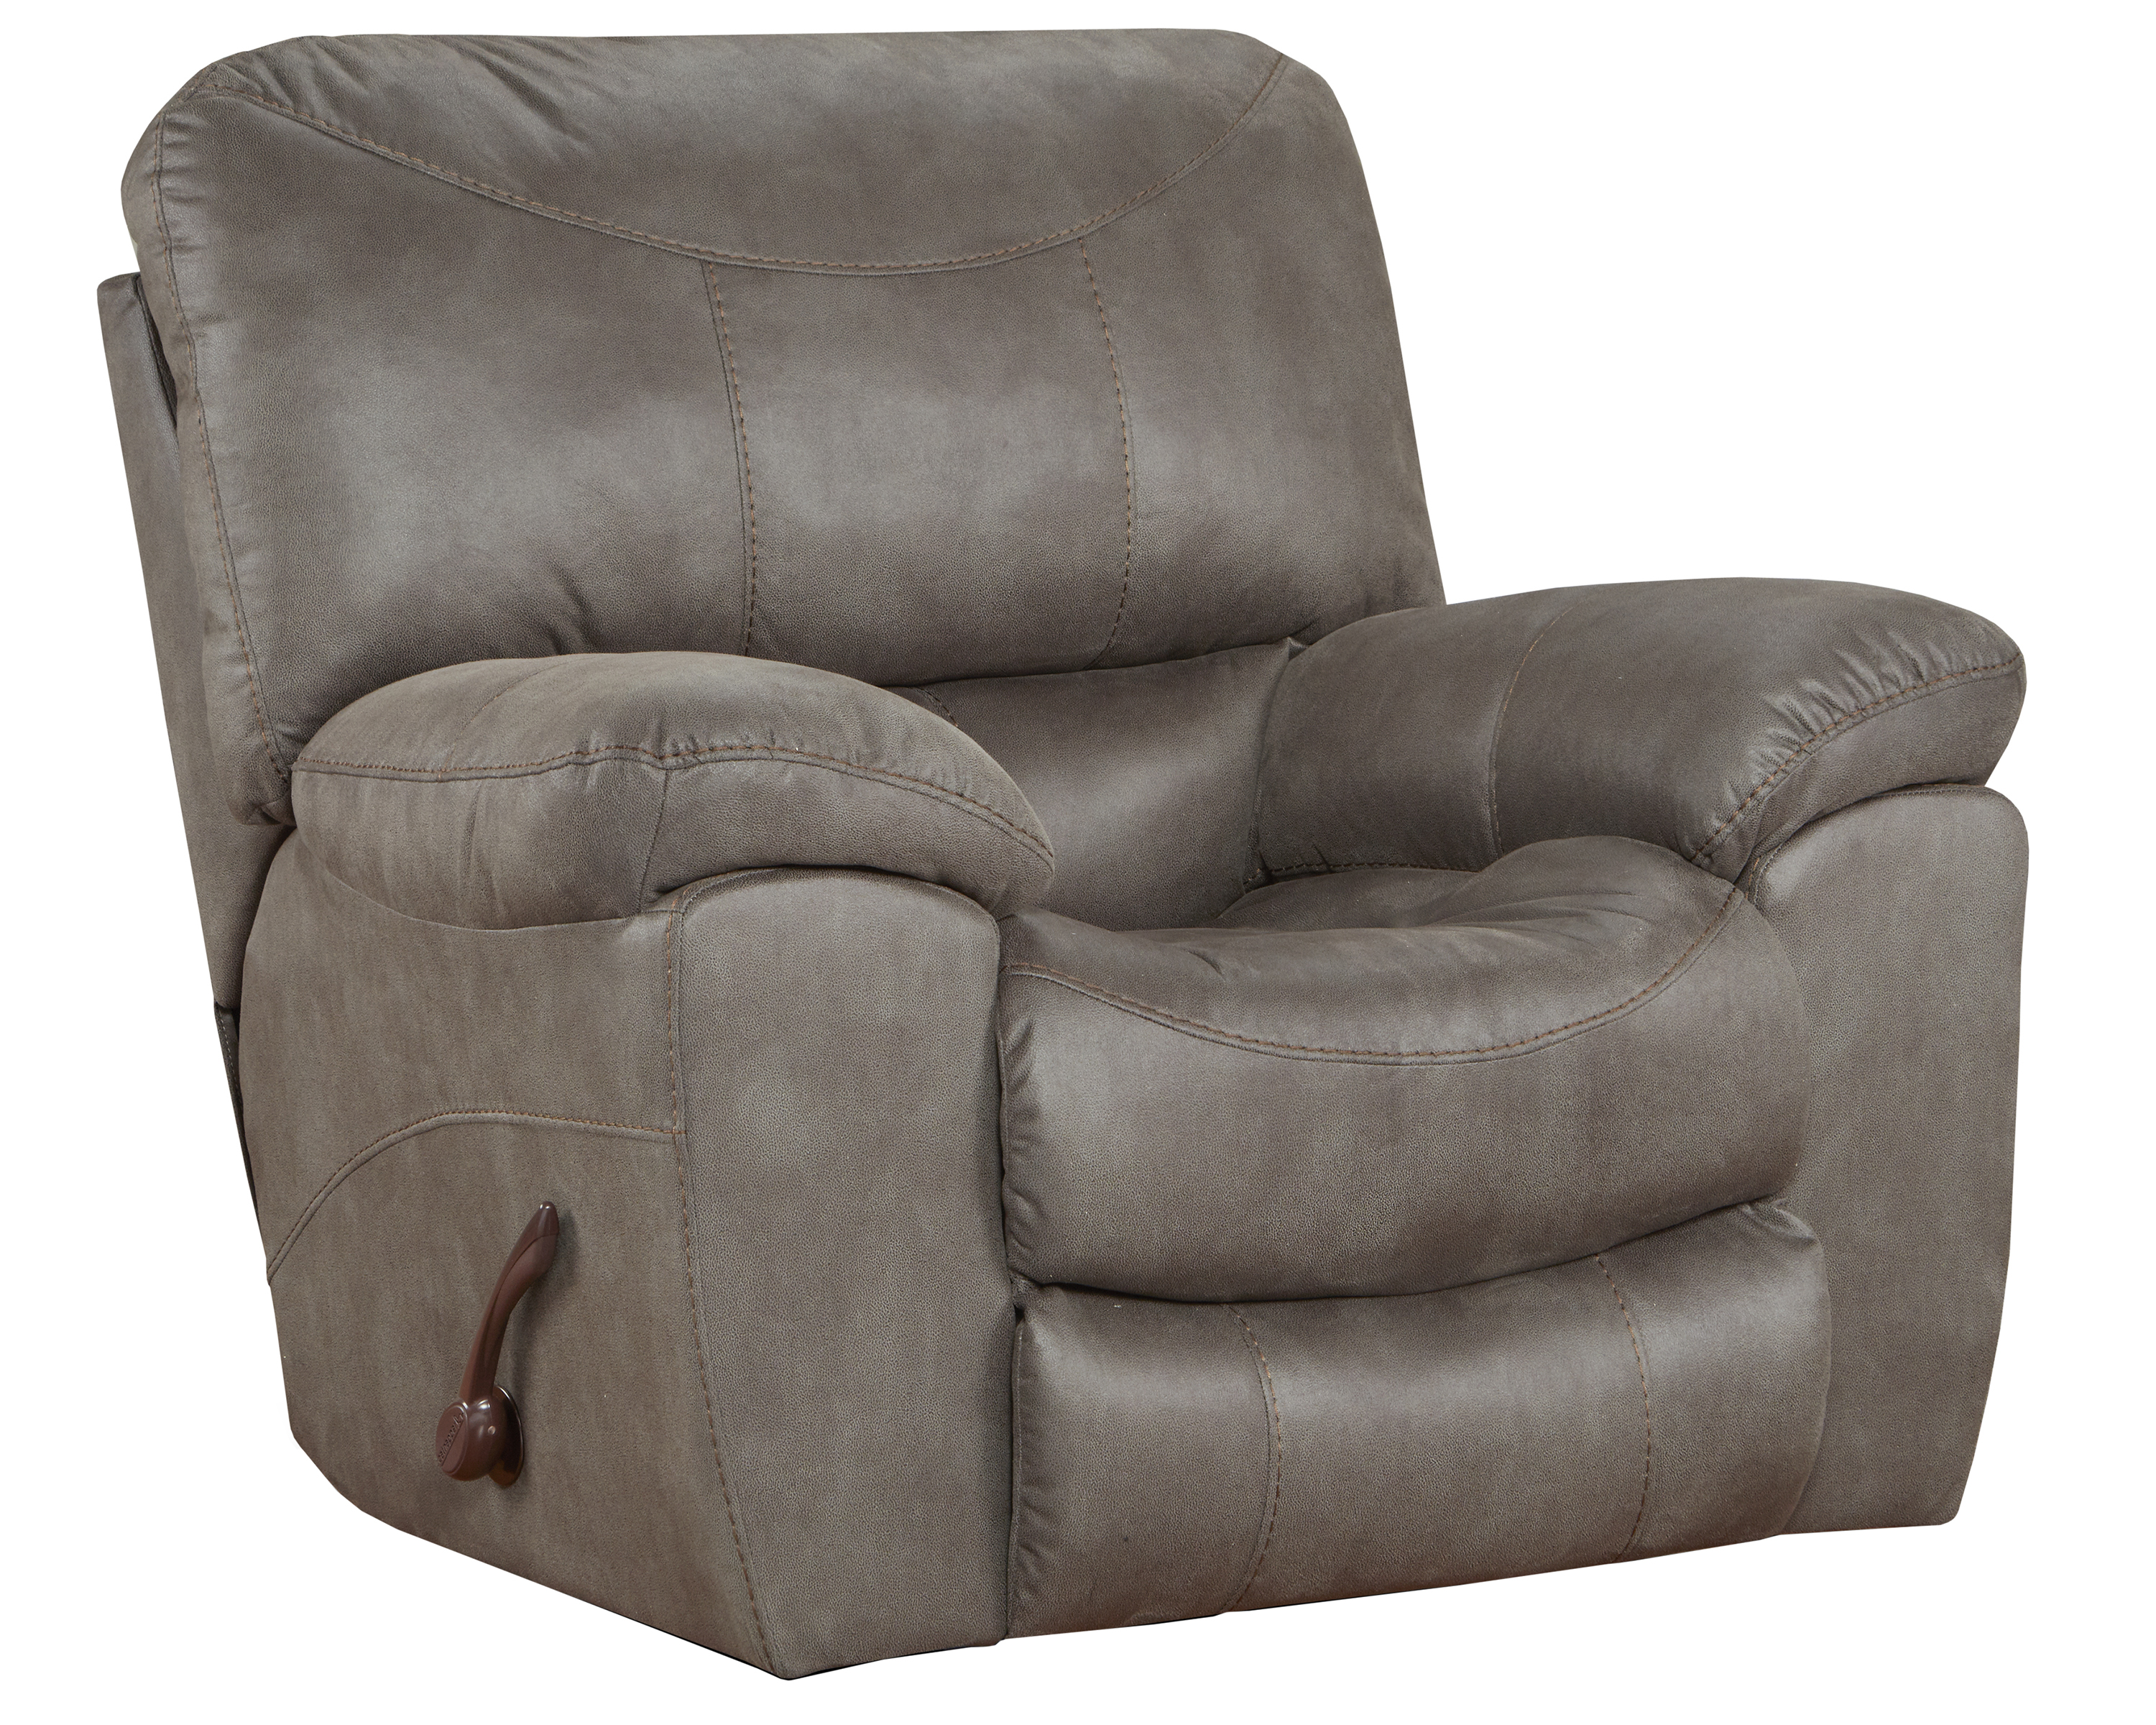 Trent Charcoal Rocker Recliner by Catnapper®